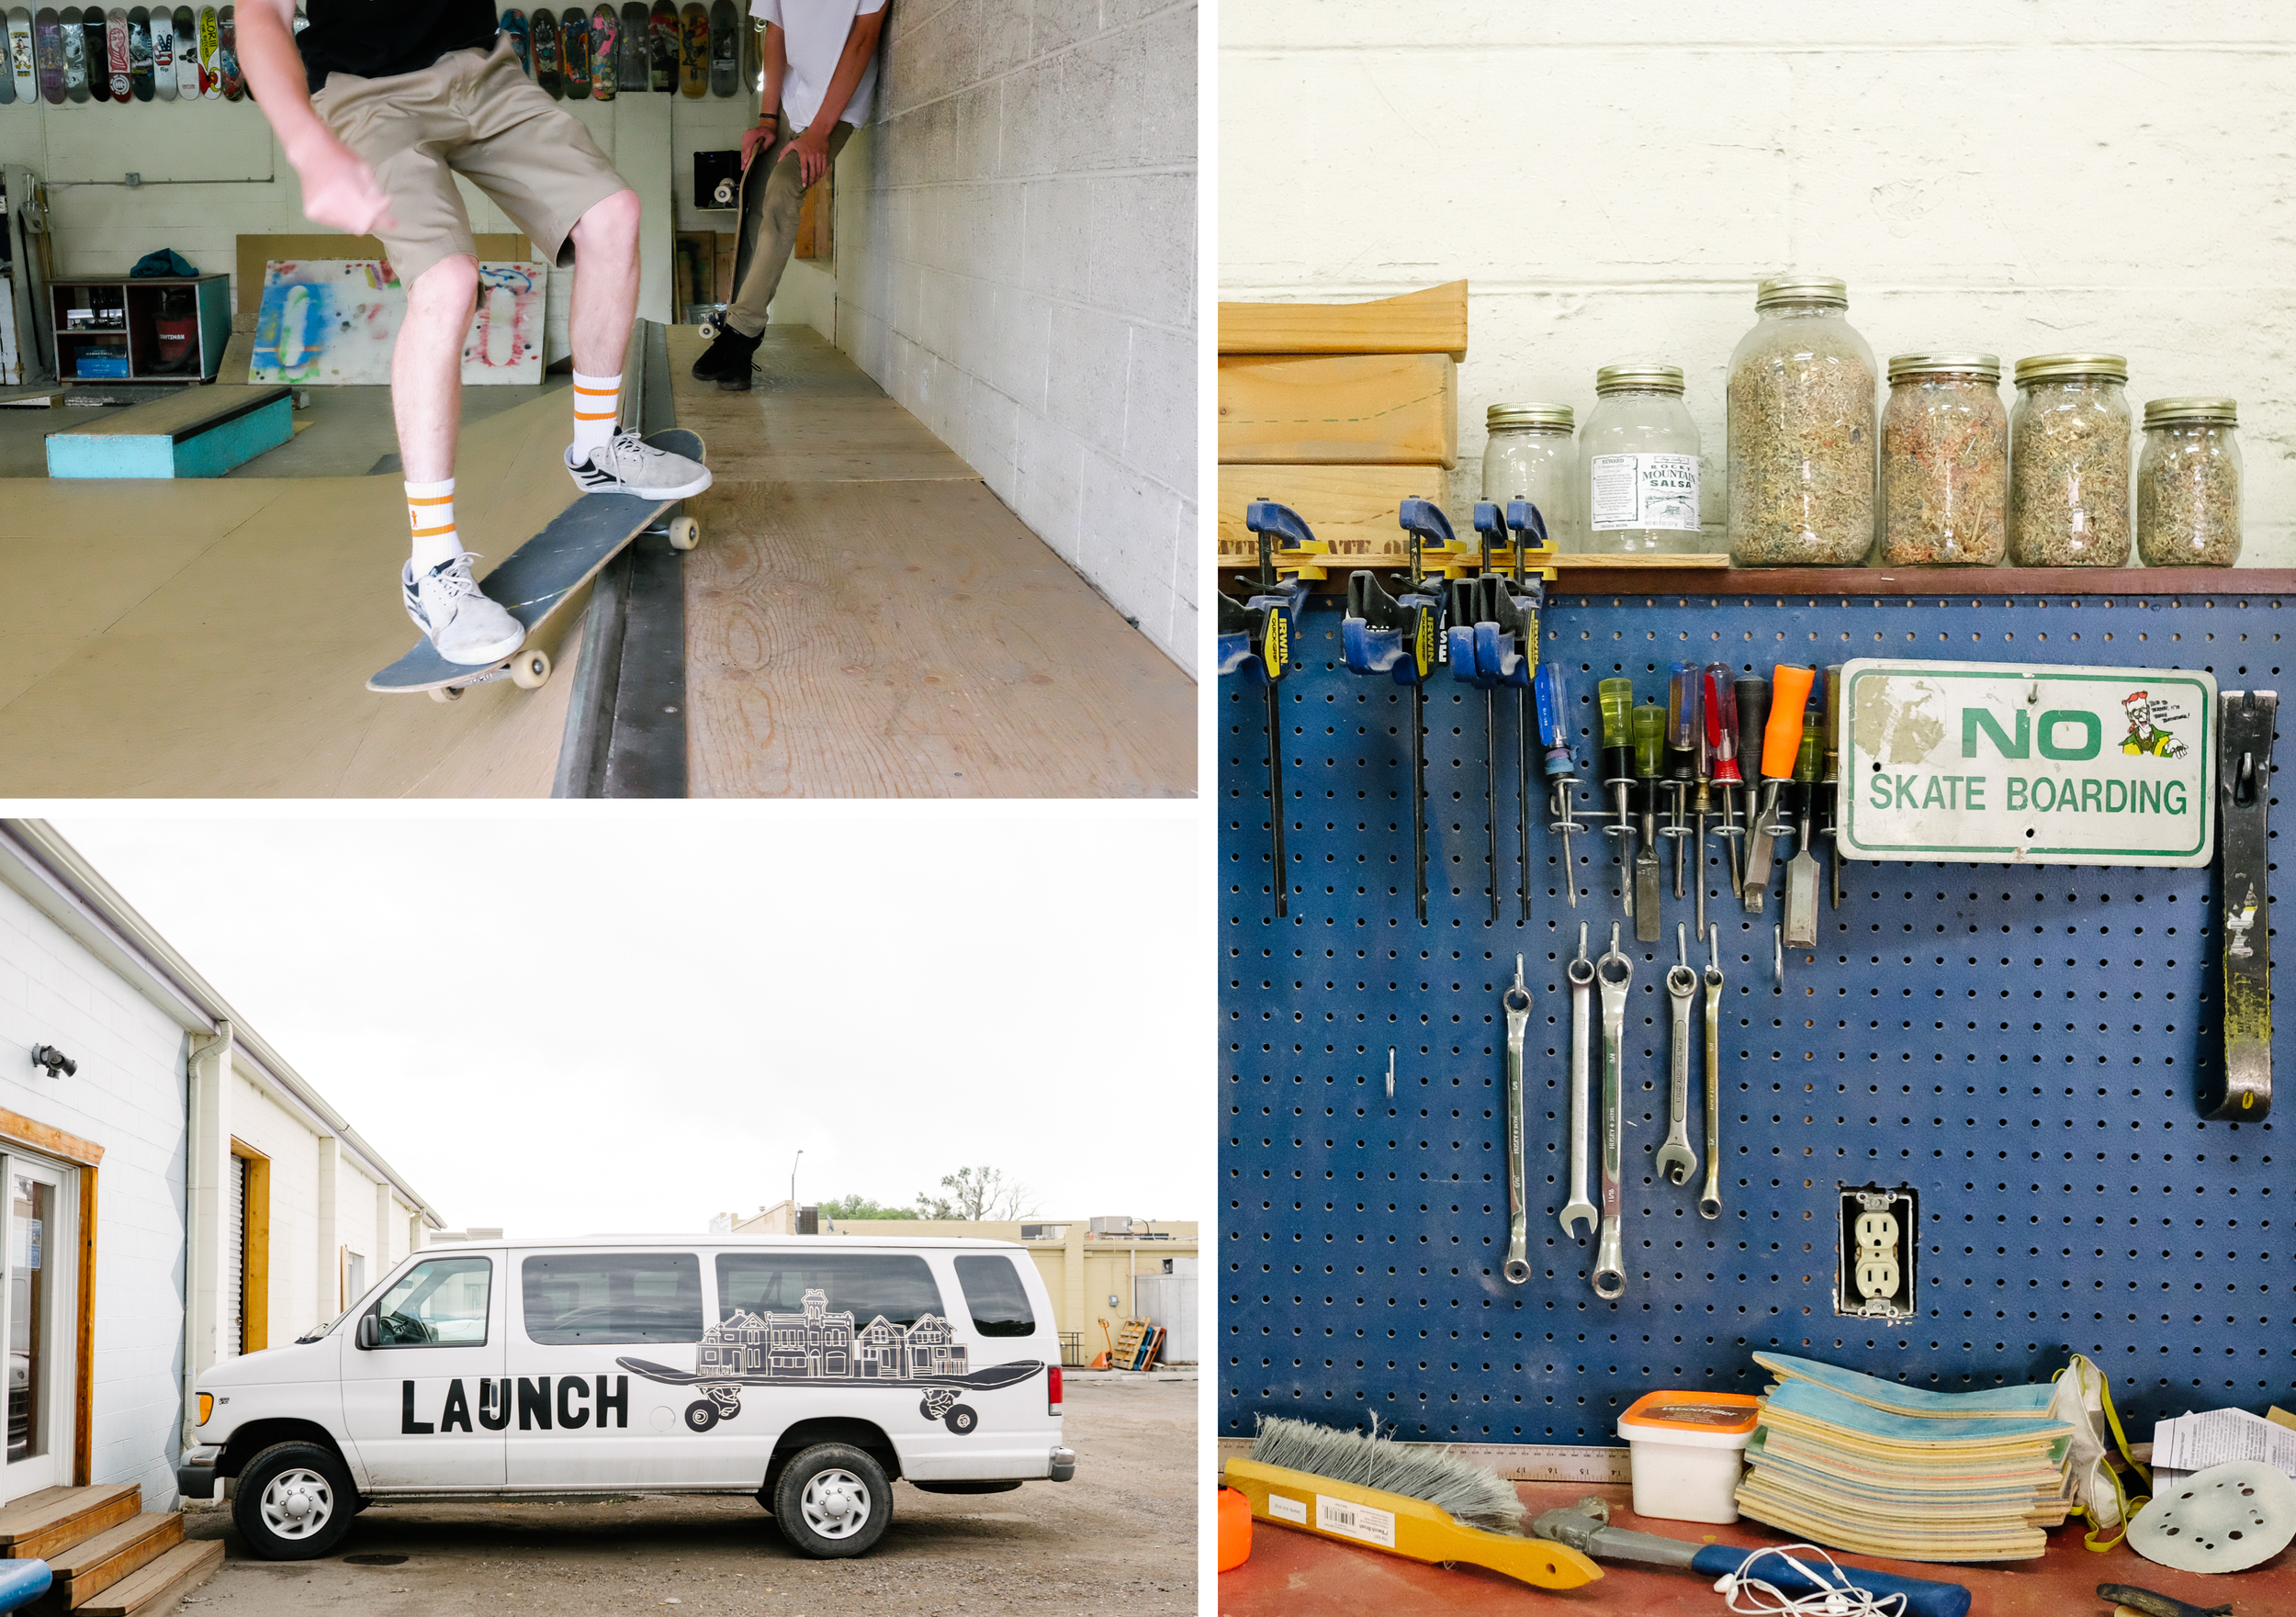 Teens show up to skate on a rainy Saturday. Launch's workbench and van.